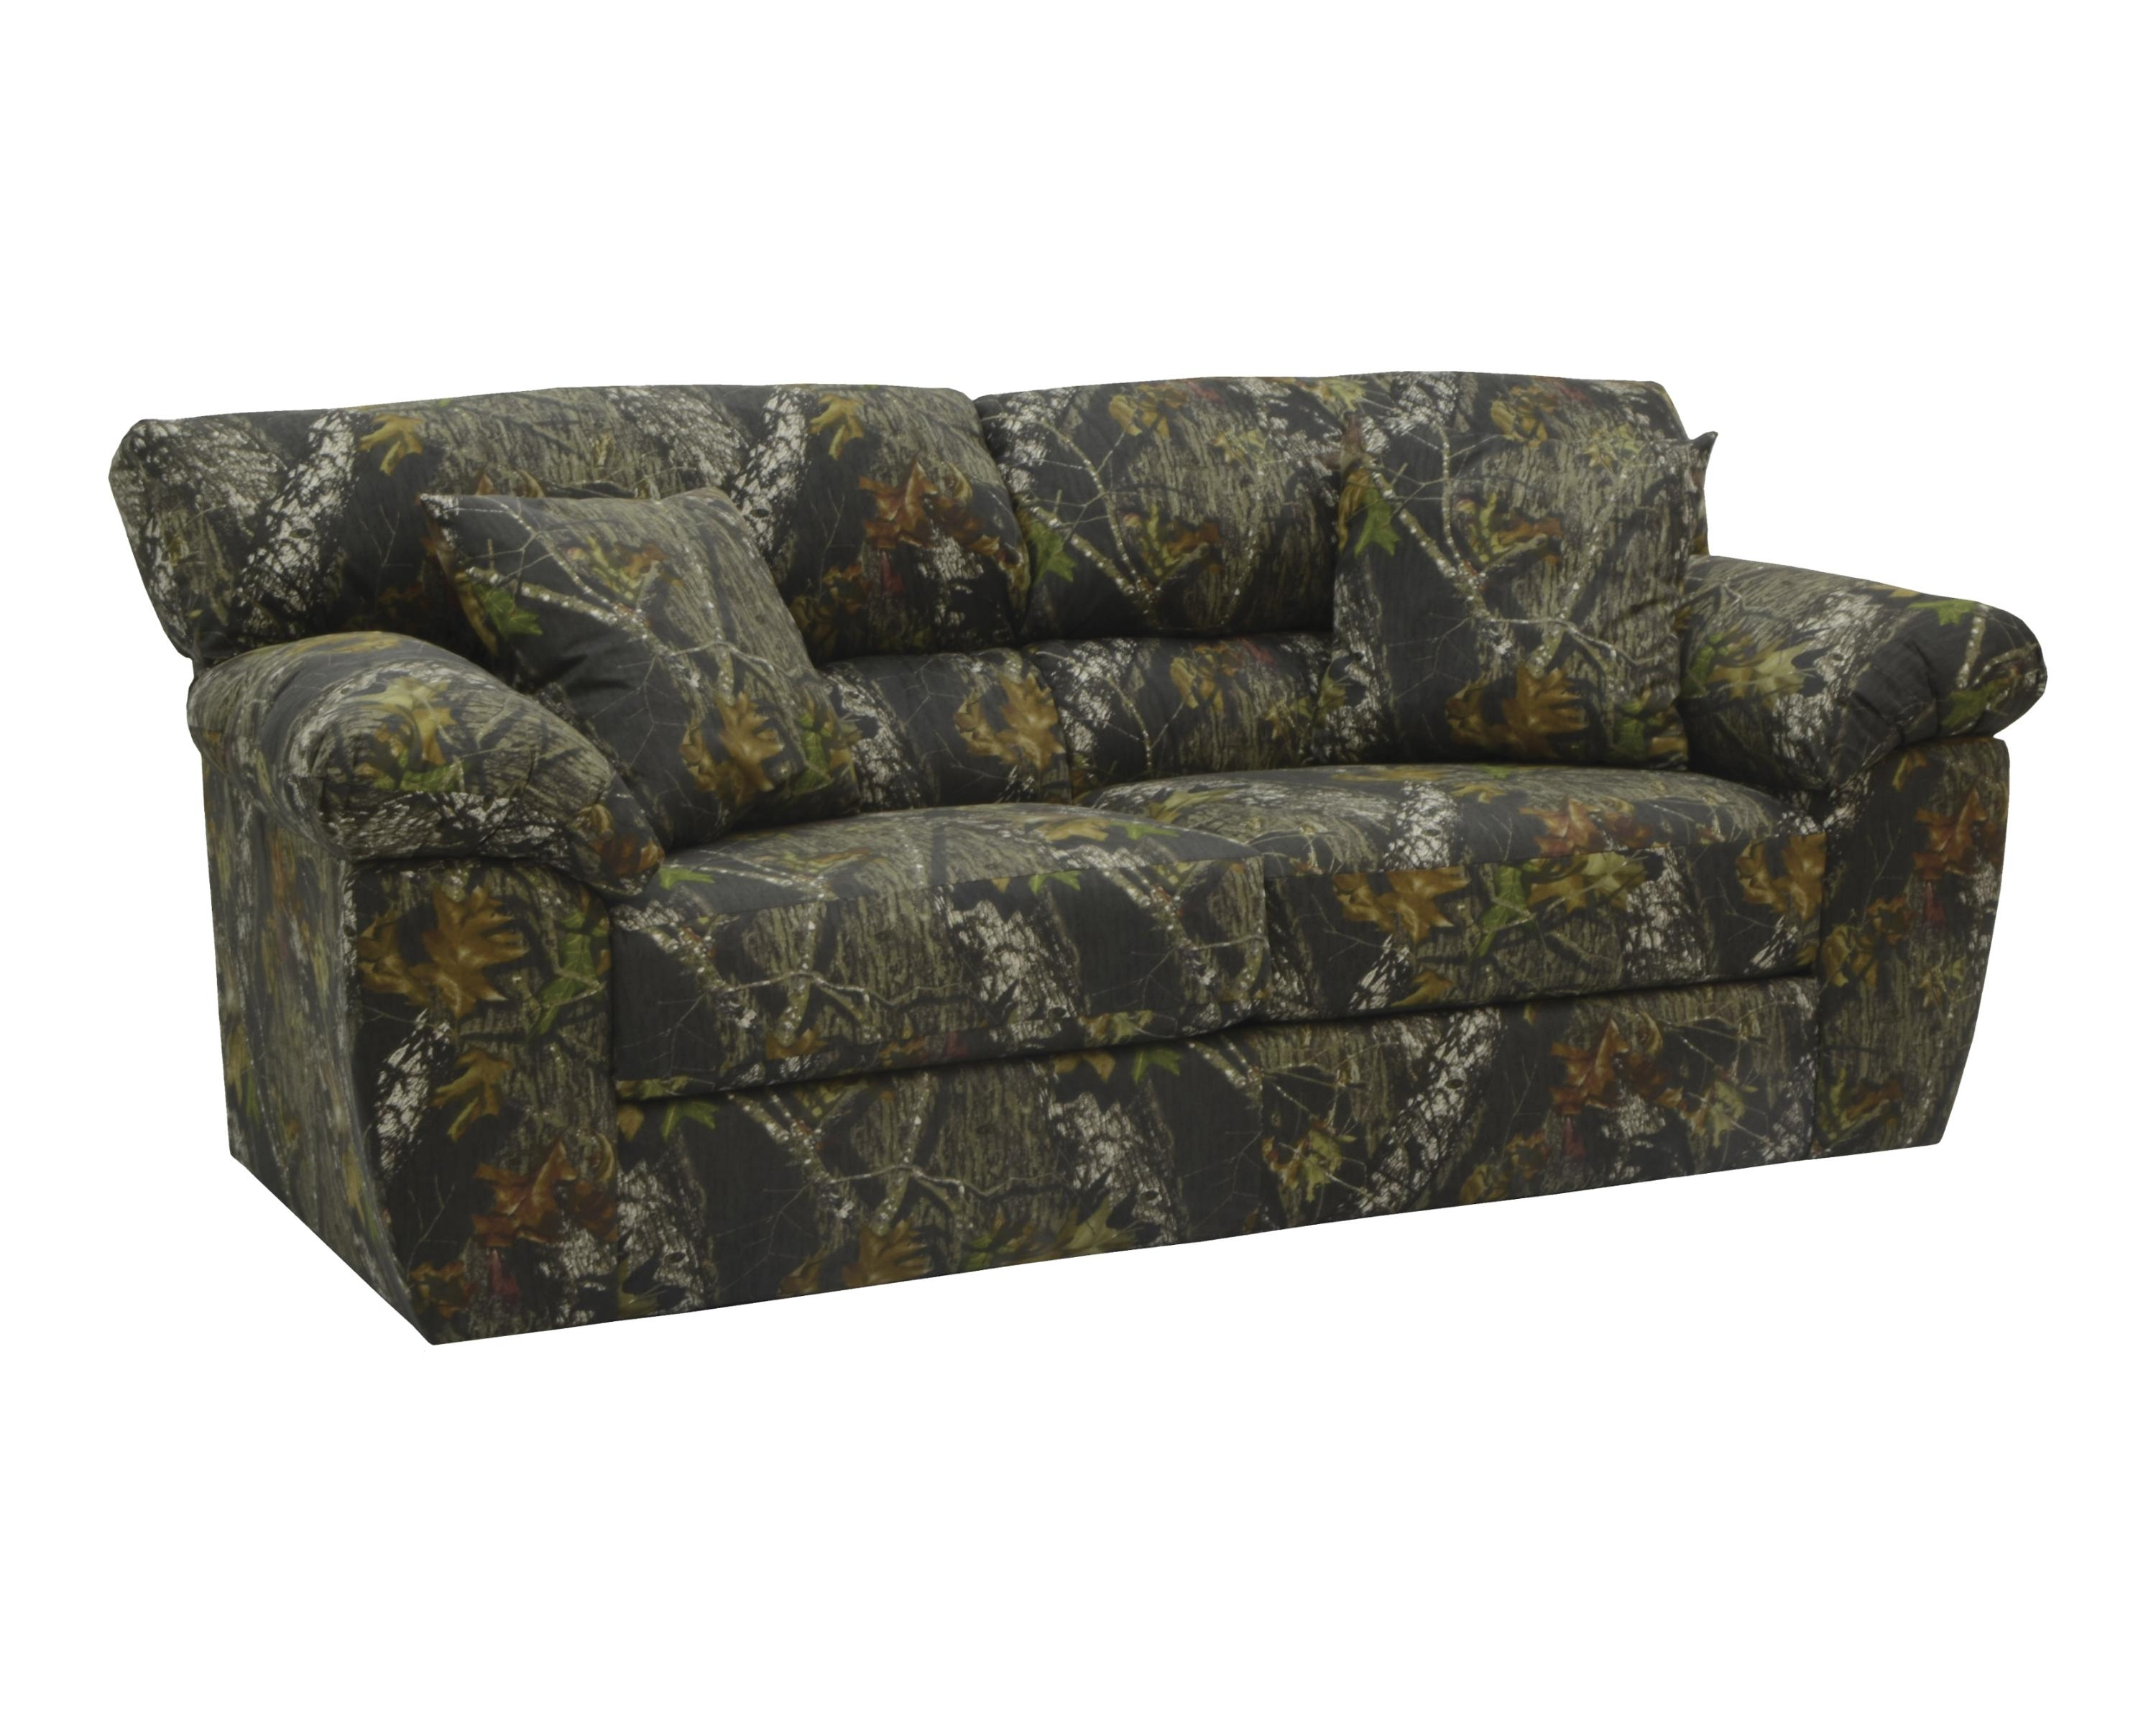 Jackson Furniture Big Game Mossy Oak Camo Sofa And Loveseat Set in Camouflage Sofas